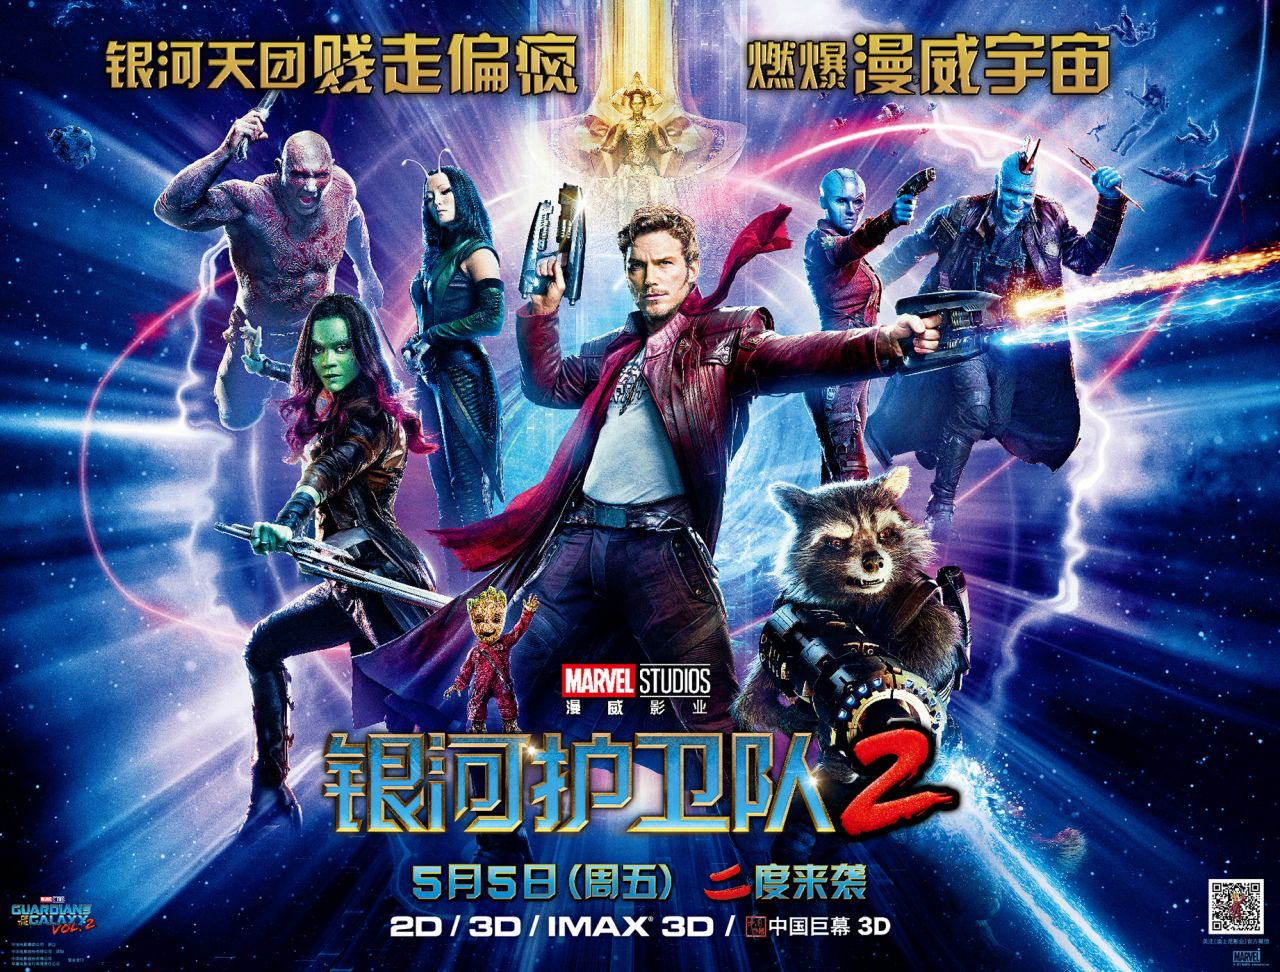 Guardians of the Galaxy Vol. 2 a hit in China